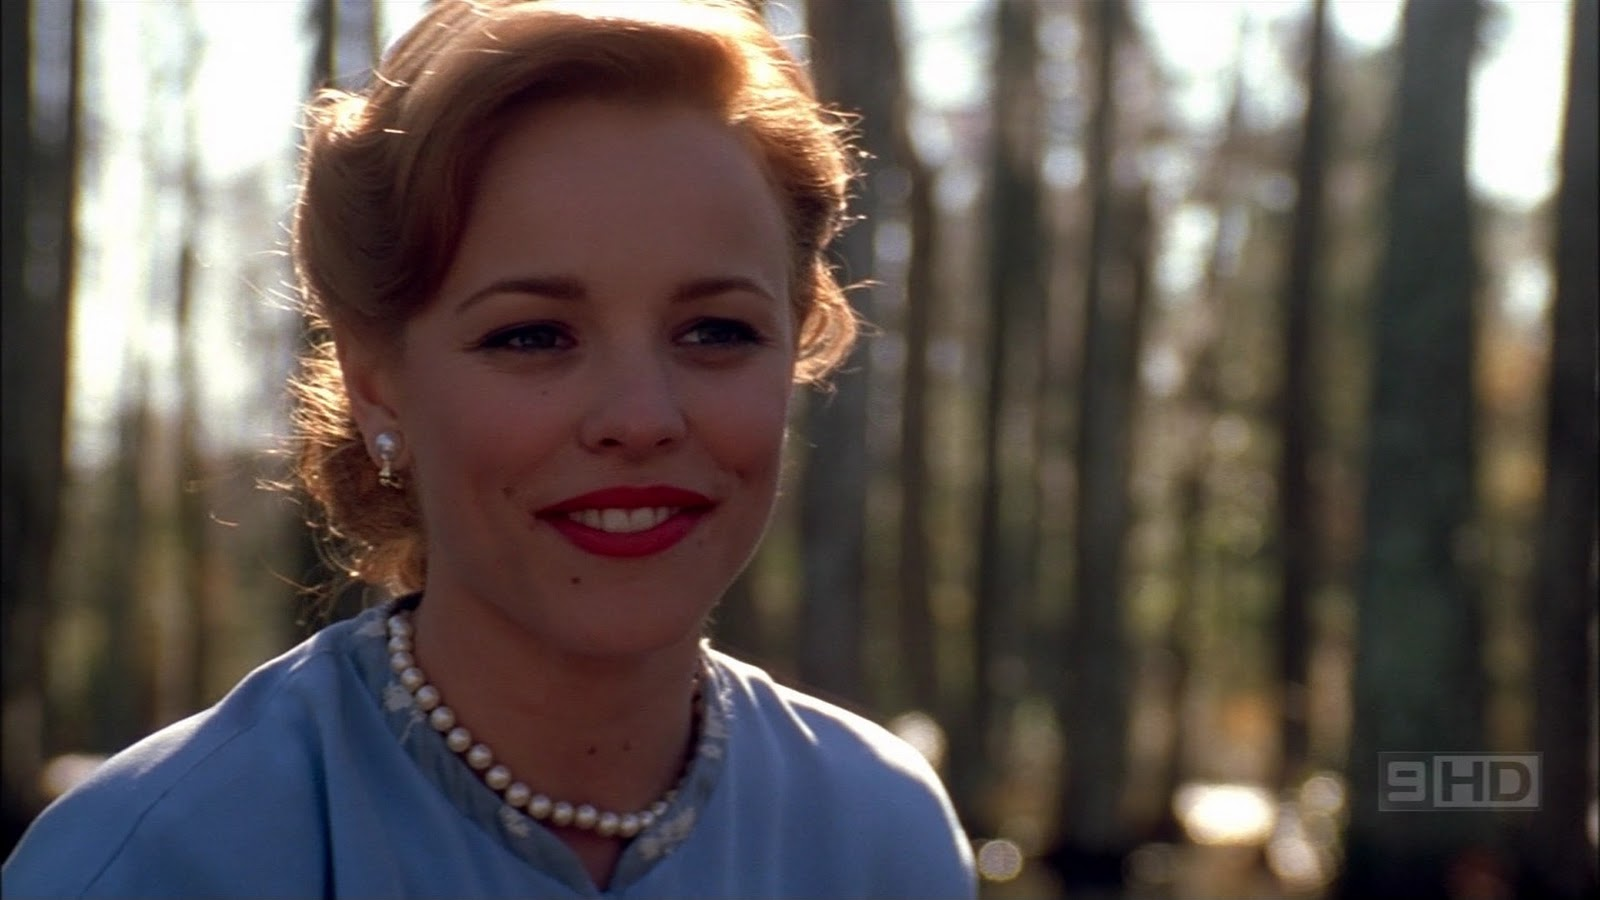 Rachel Mcadams Hair Color In The Notebook 6k Pics